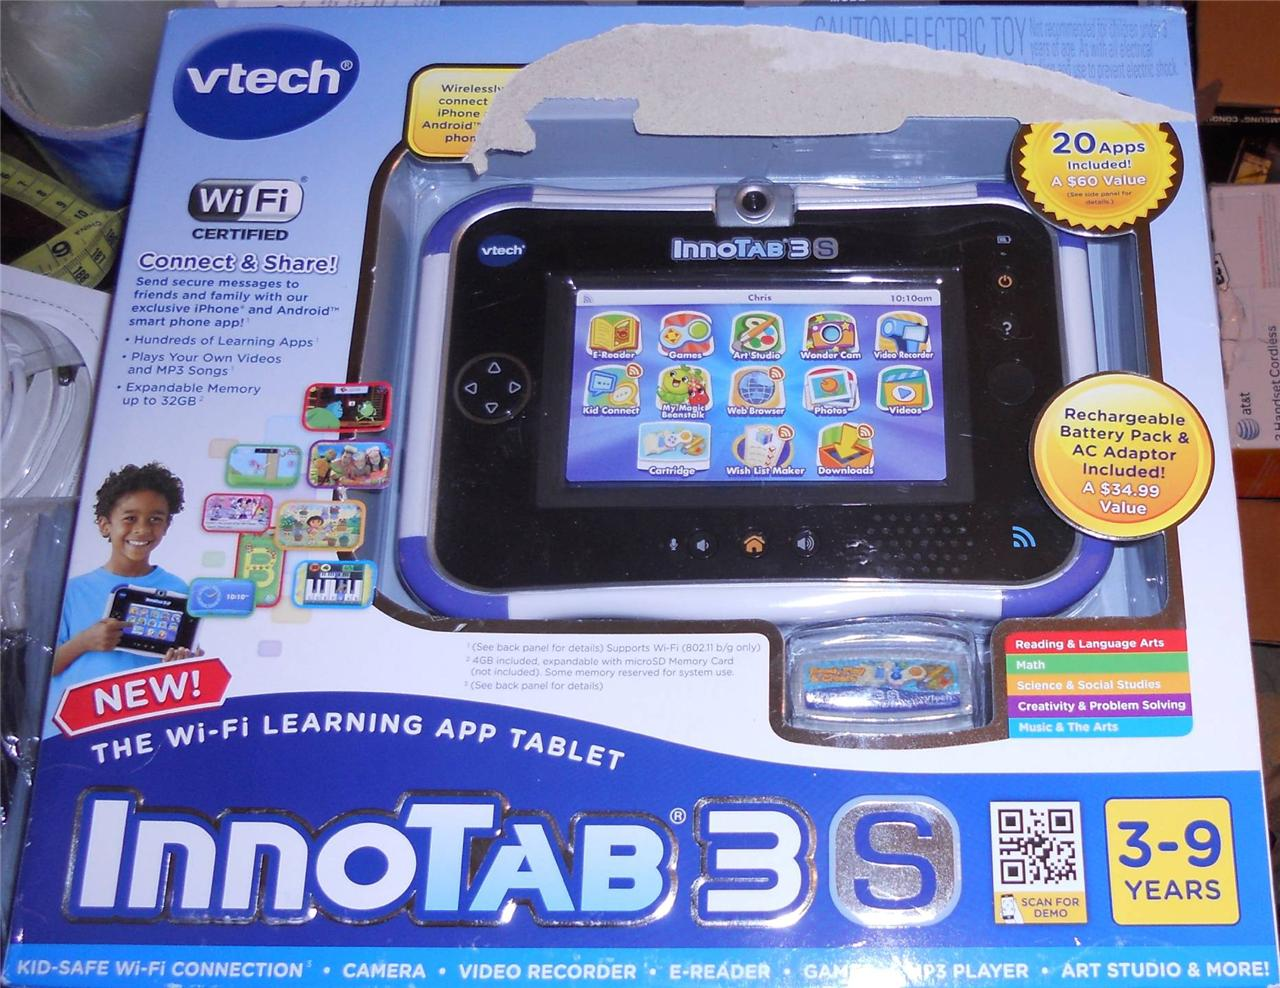 This is the first time I do a 1 star and I have been writing product reviews on Amazon since This product is very expensive for no reason, I have bought VTech's other products that are equally as bad but have never complained because I paid aroud $10 for those.